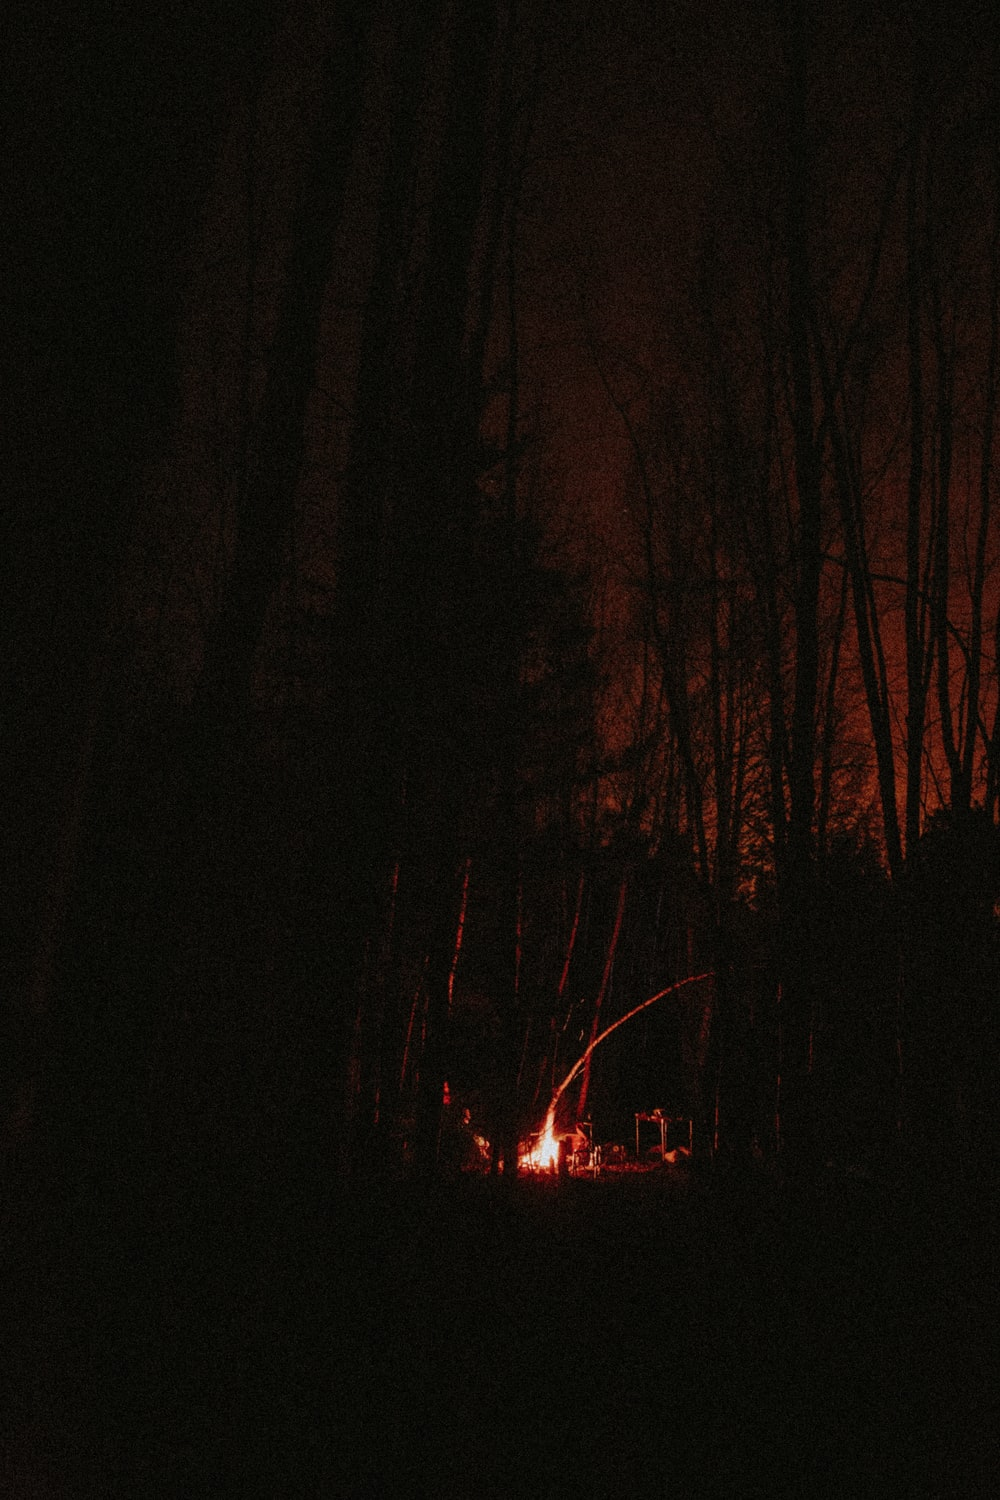 red and yellow fire in forest during night time